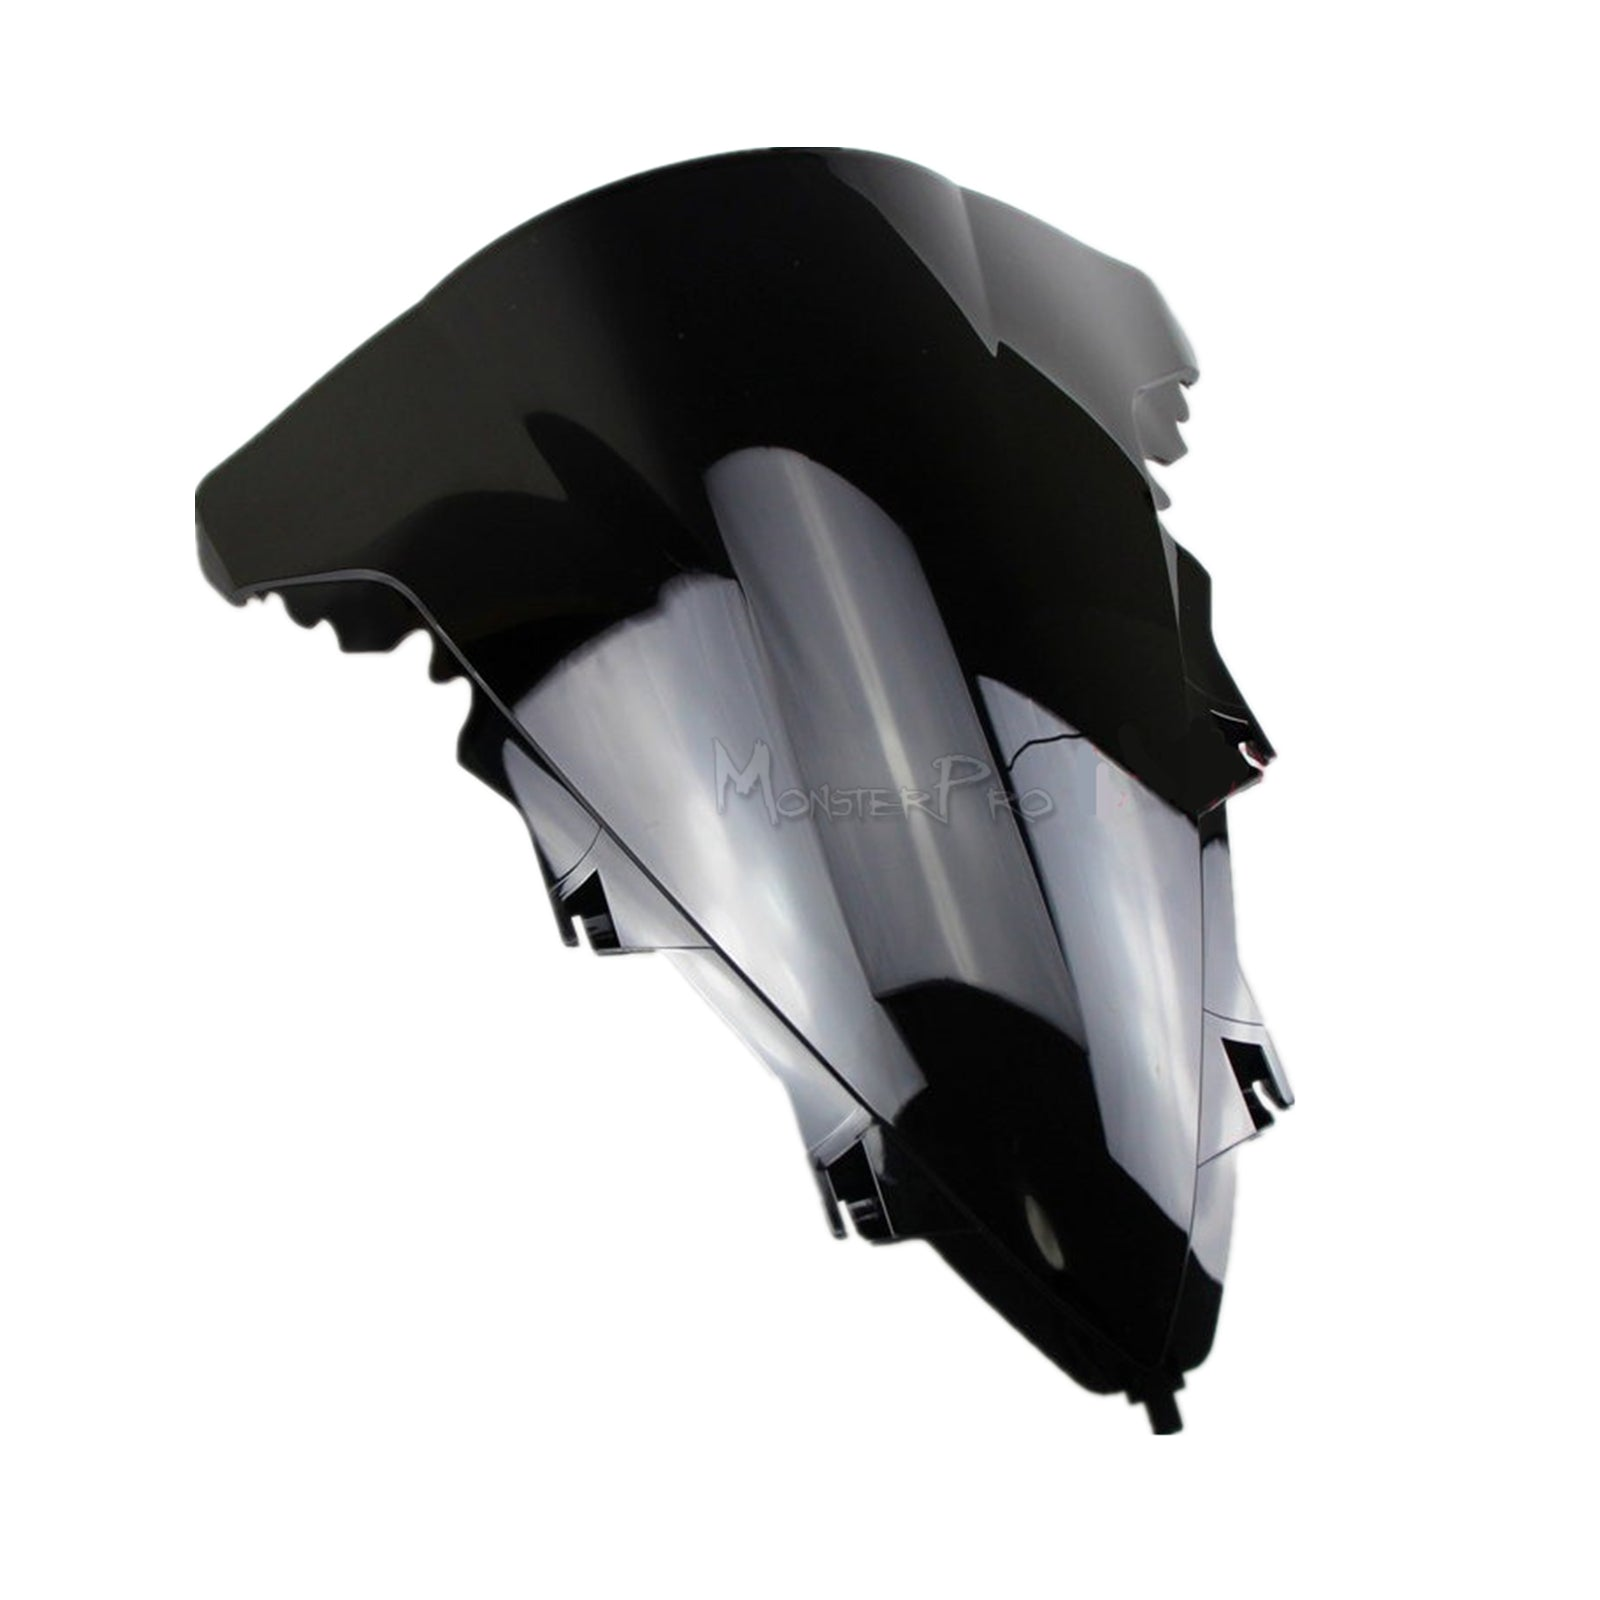 Black Windscreen for Yamaha YZF R1 2009-2015